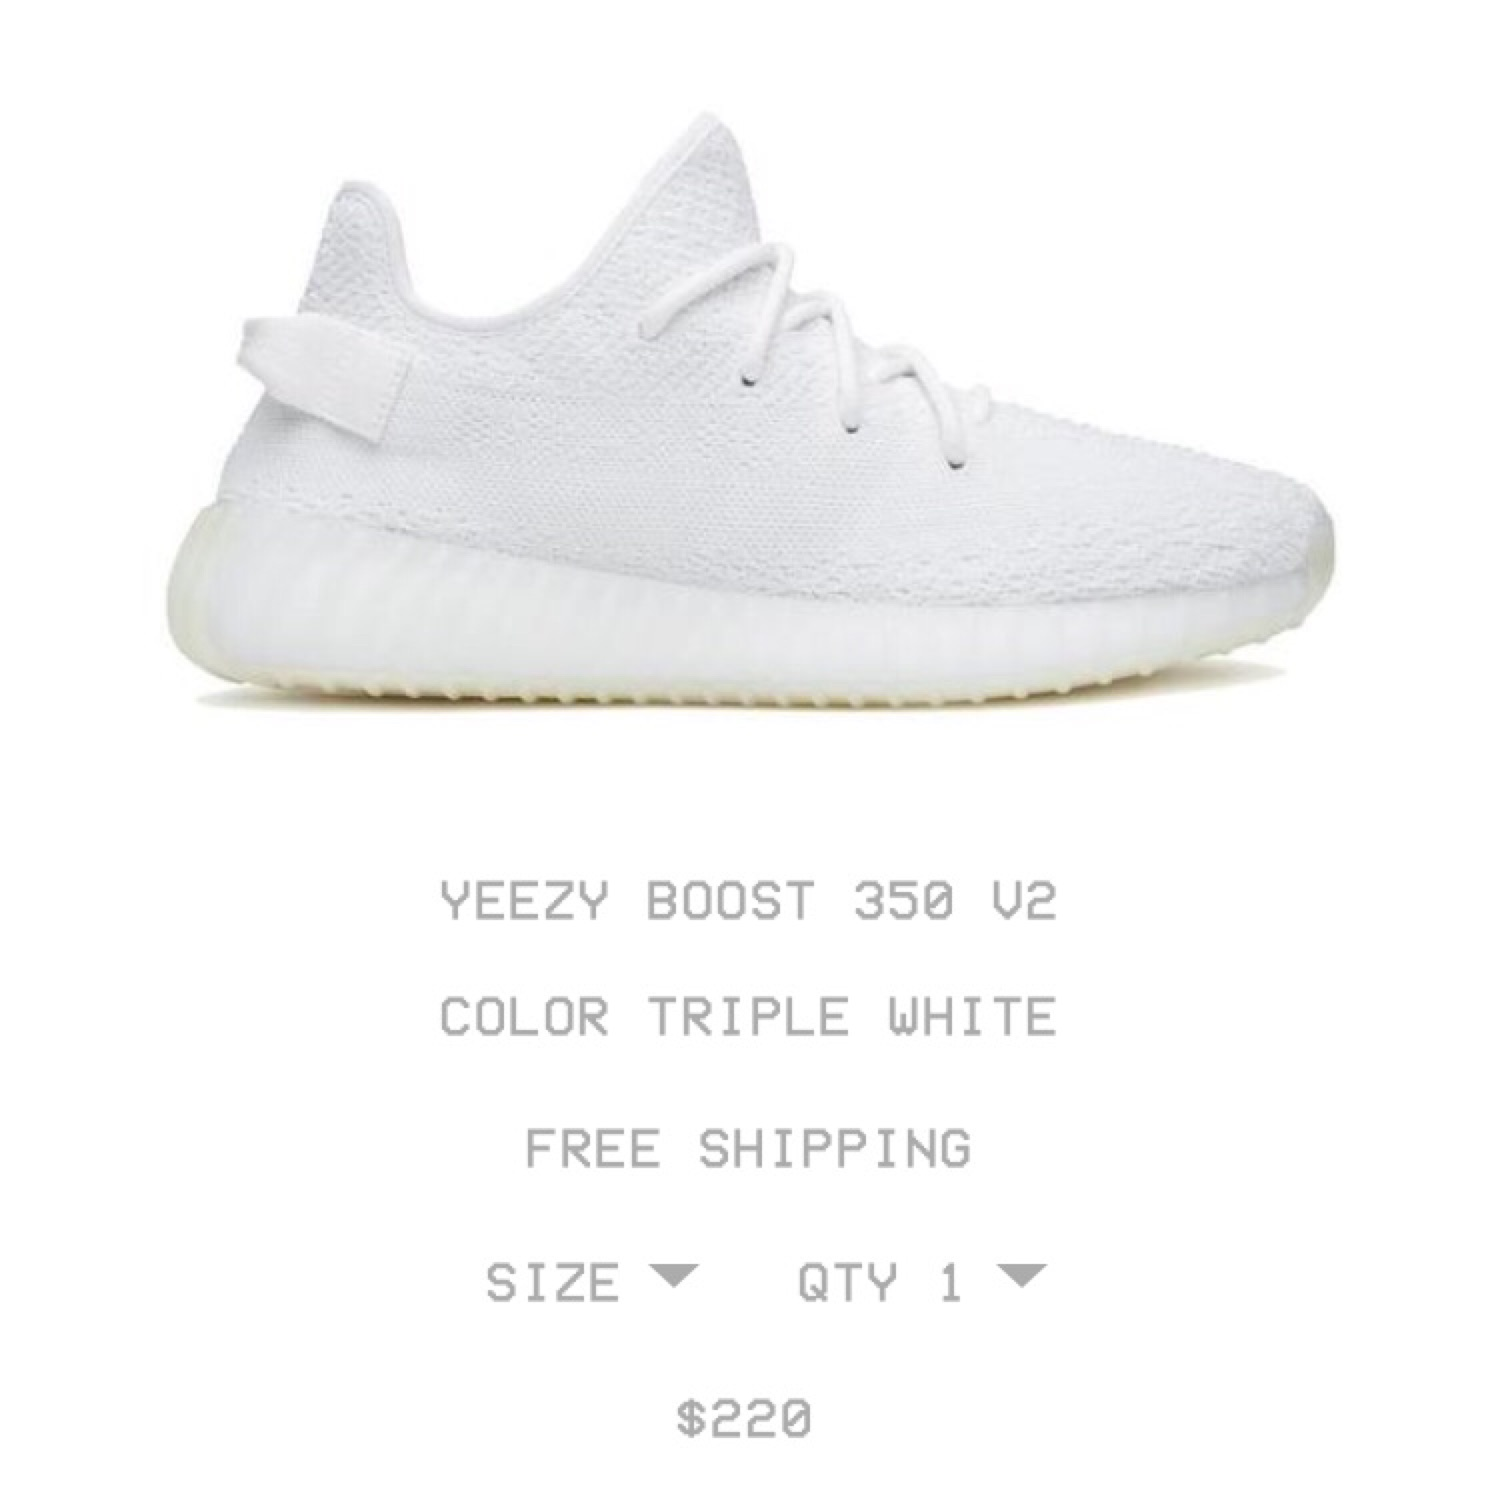 low priced 42d4d a05ca Yeezy Boost 350 Cream V2 Confirmed Order